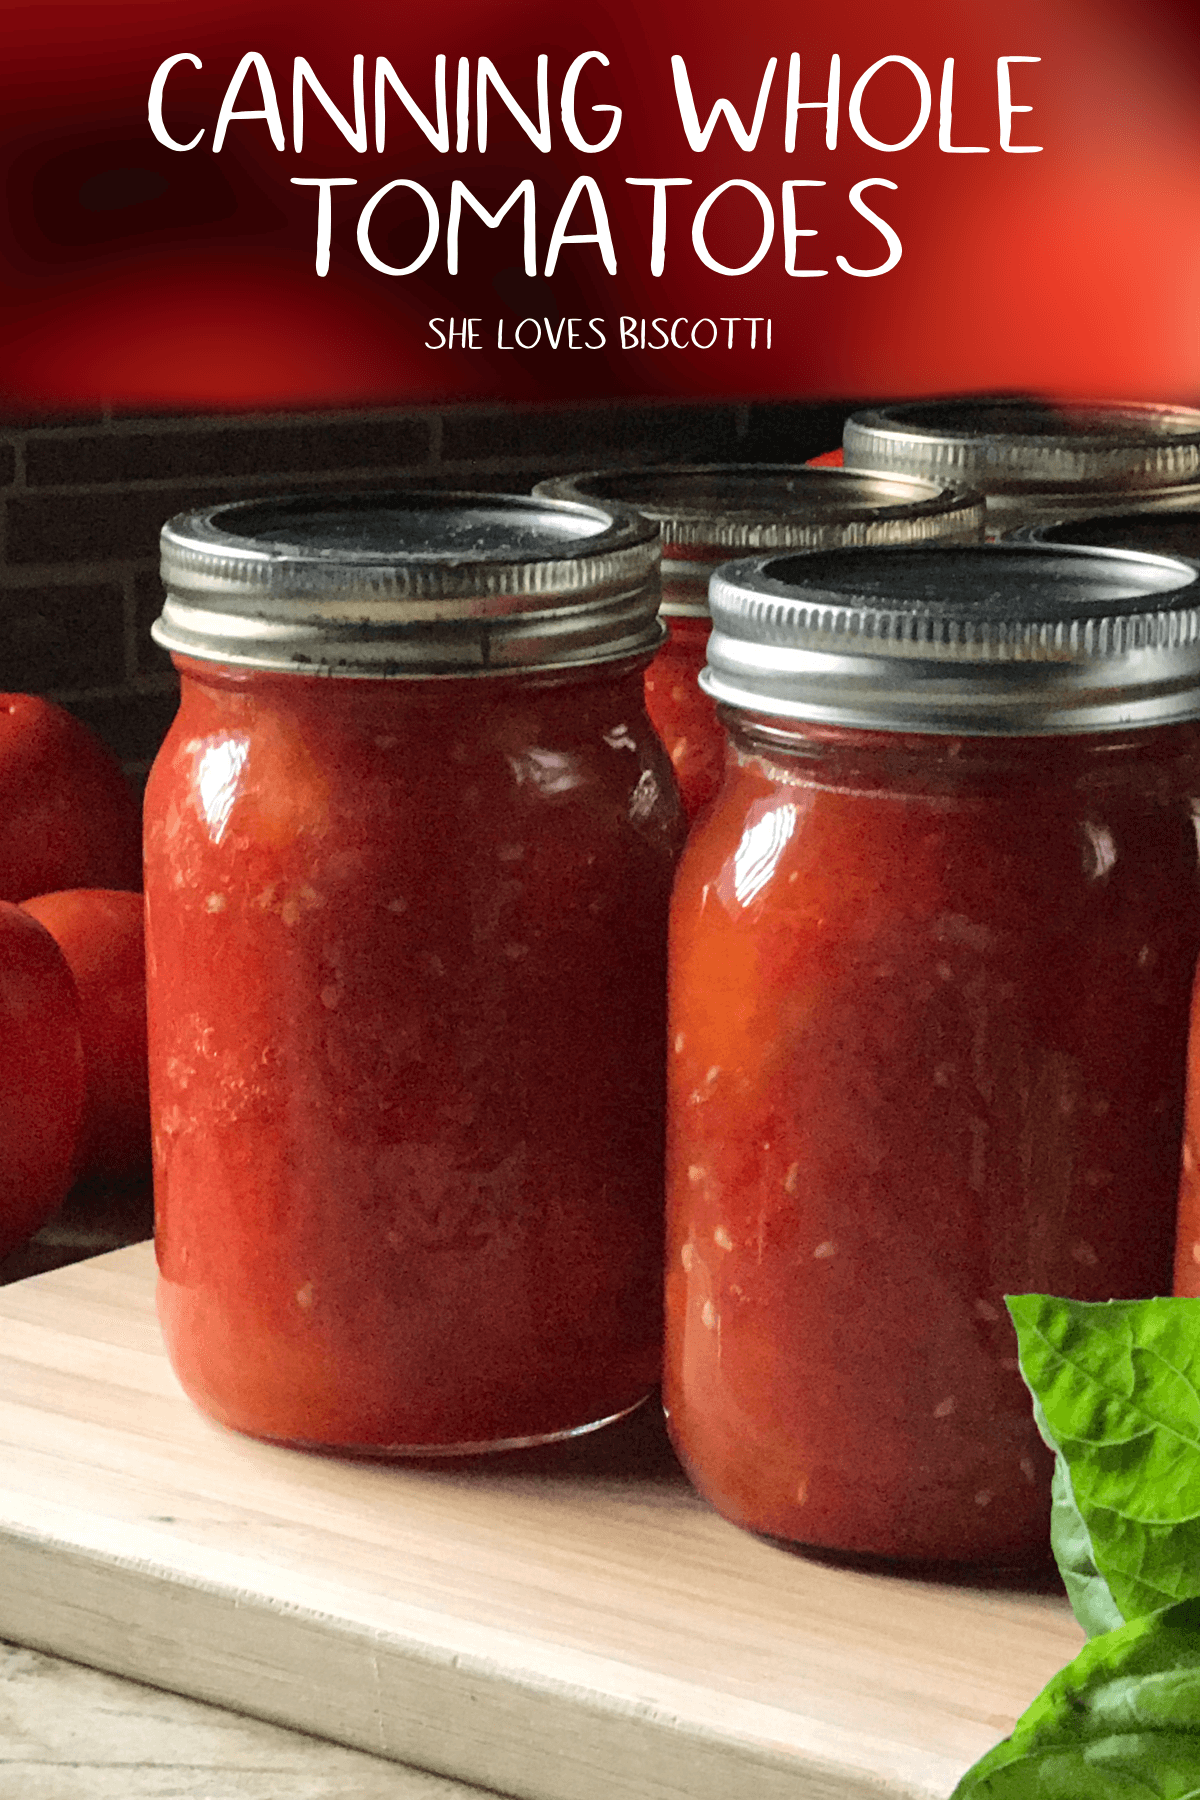 Canning Raw Pack Whole Tomatoes... so easy to make and so convenient to have. A step by step tutorial on how to can whole tomatoes. #shelovesbiscotti #cannedtomatoes #canning #howtocantomatoes